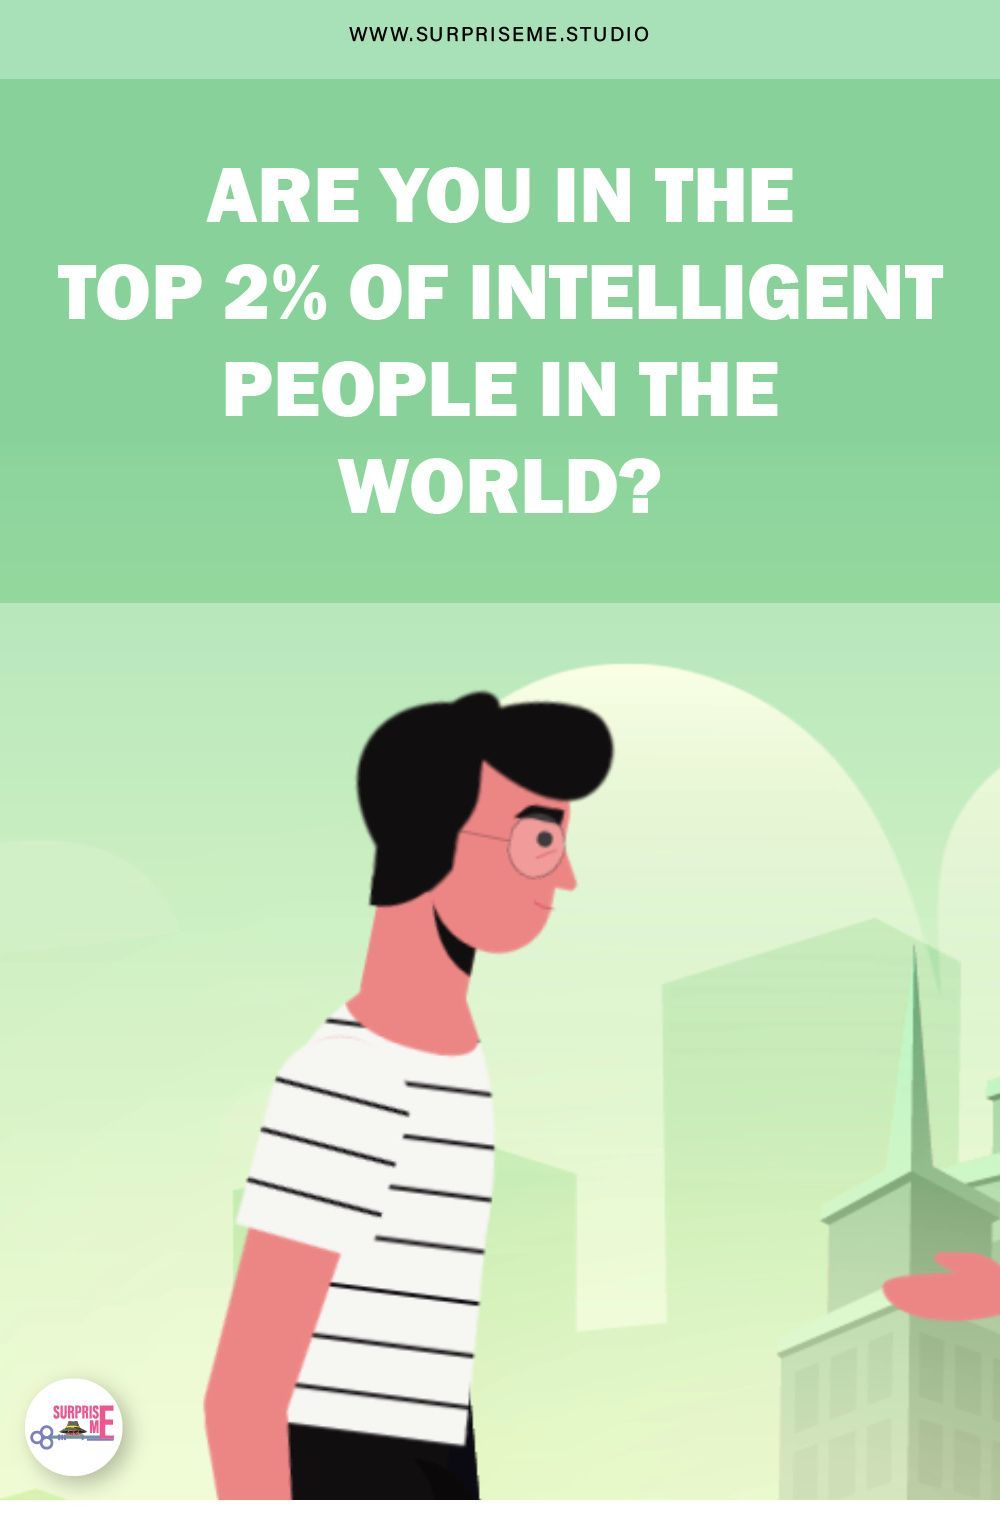 Are You in the Top 2 of Intelligent People in the World